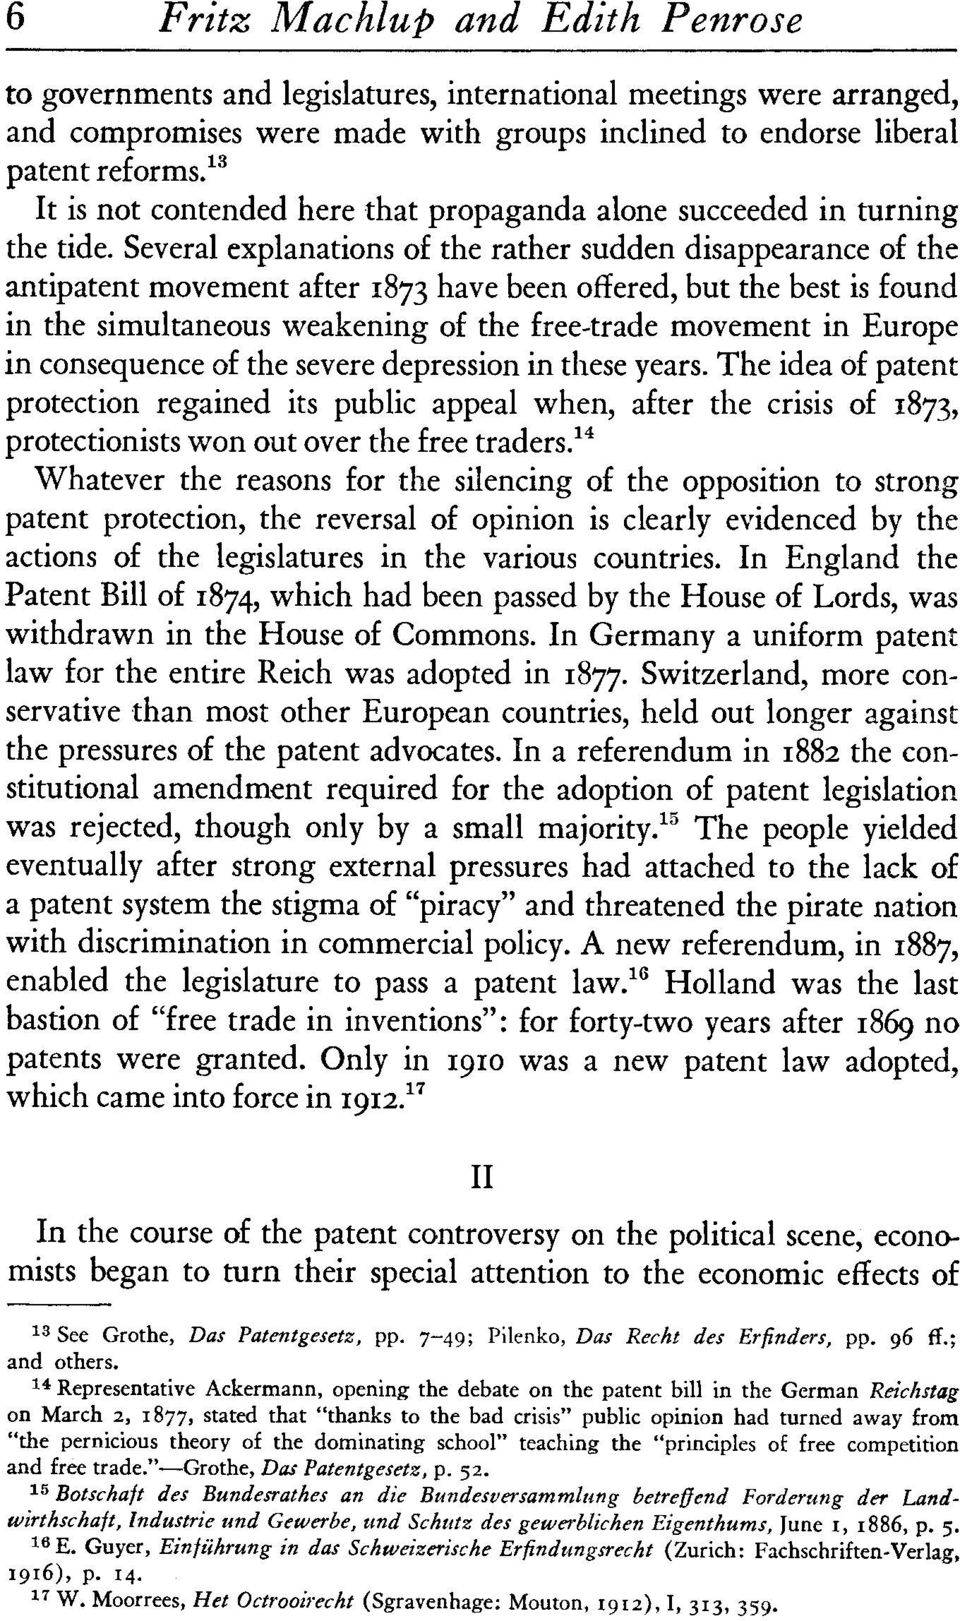 Several explanations of the rather sudden disappearance of the antipatent movement after 1873 i873 have been offered, but the best is found in the simultaneous weakening of the free-trade movement in